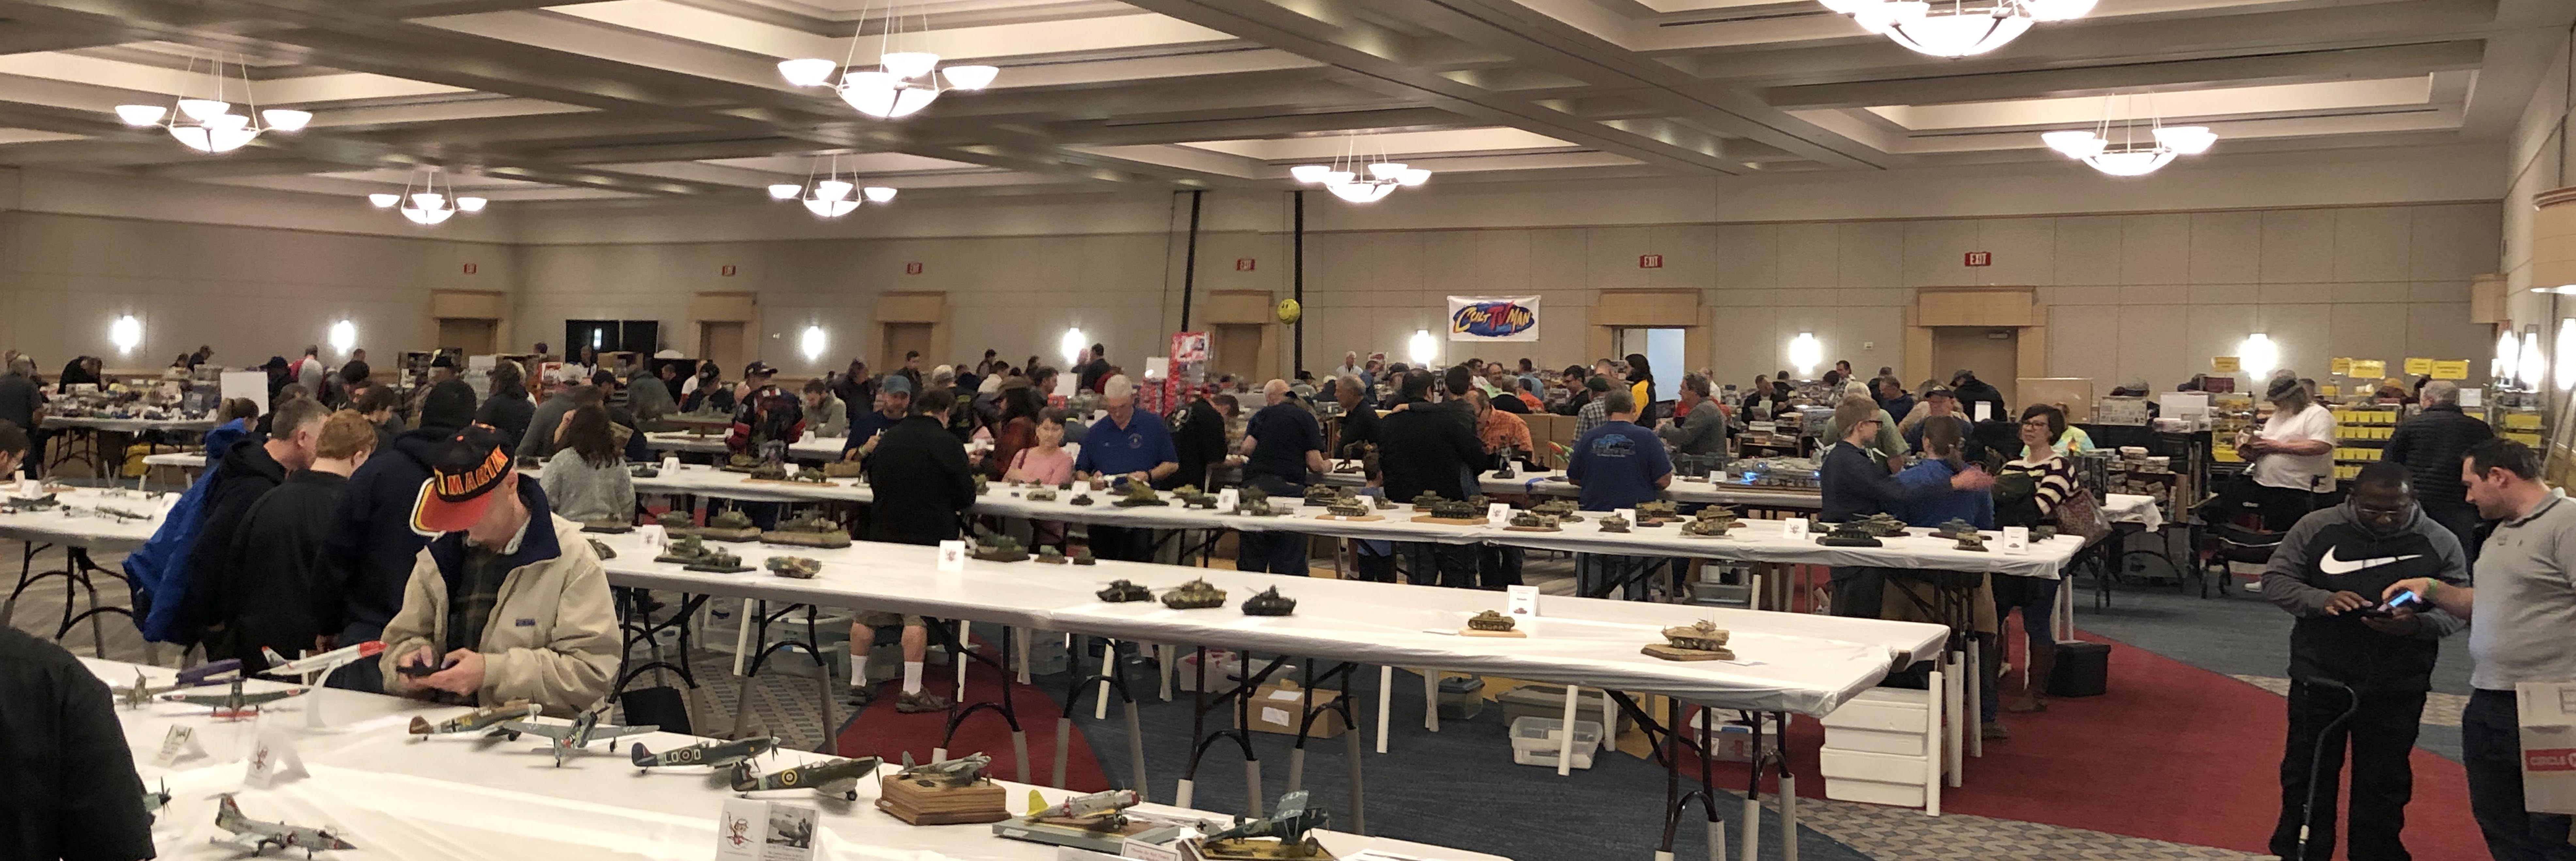 2019 Chattanooga Scale Modelers Show 2.jpg